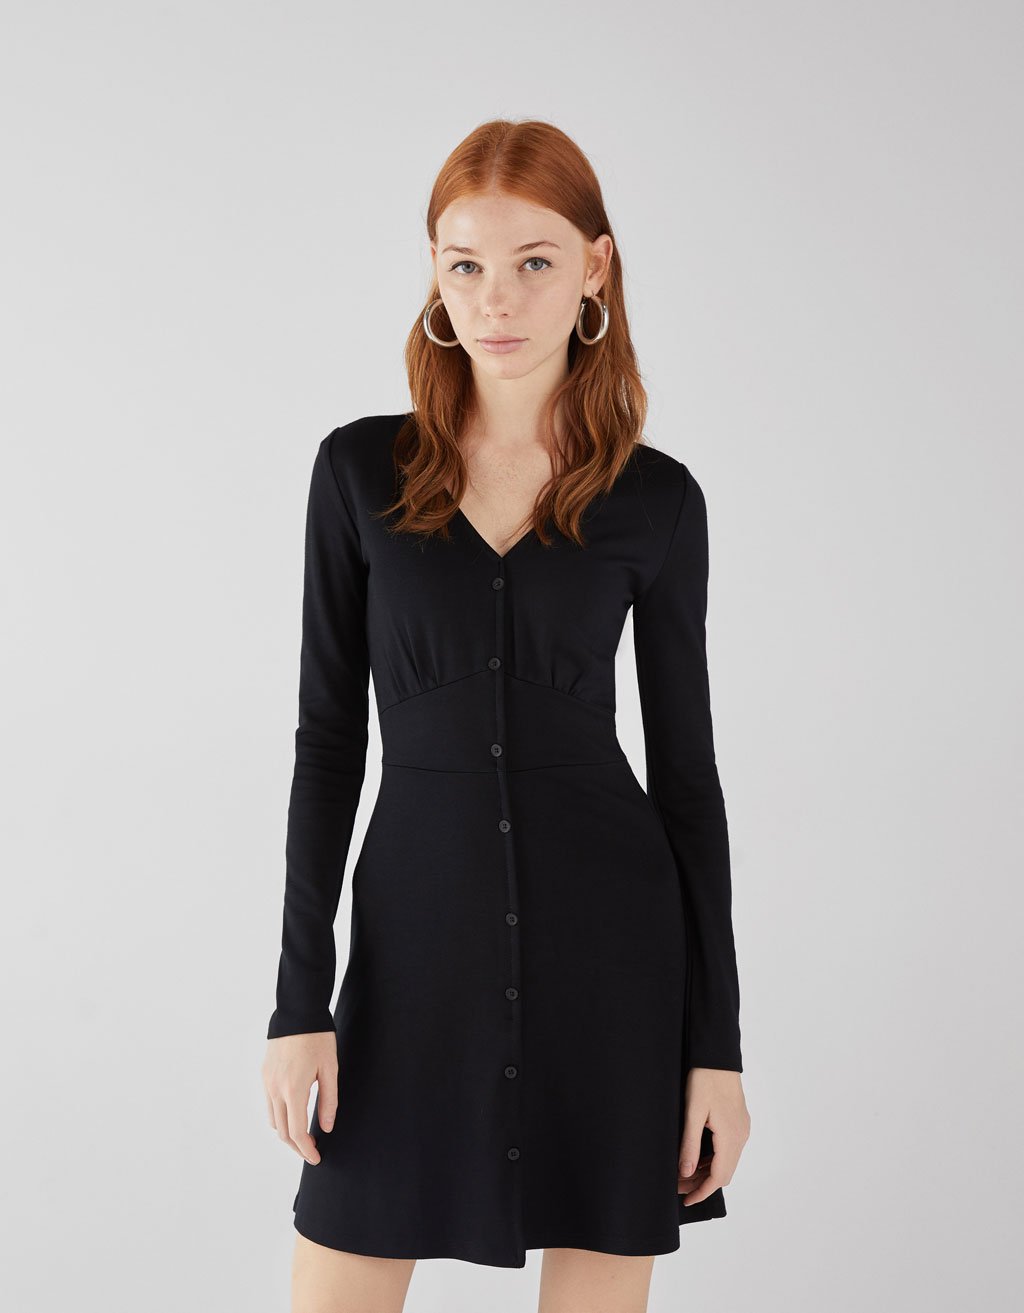 Ponte di Roma knit dress with buttons